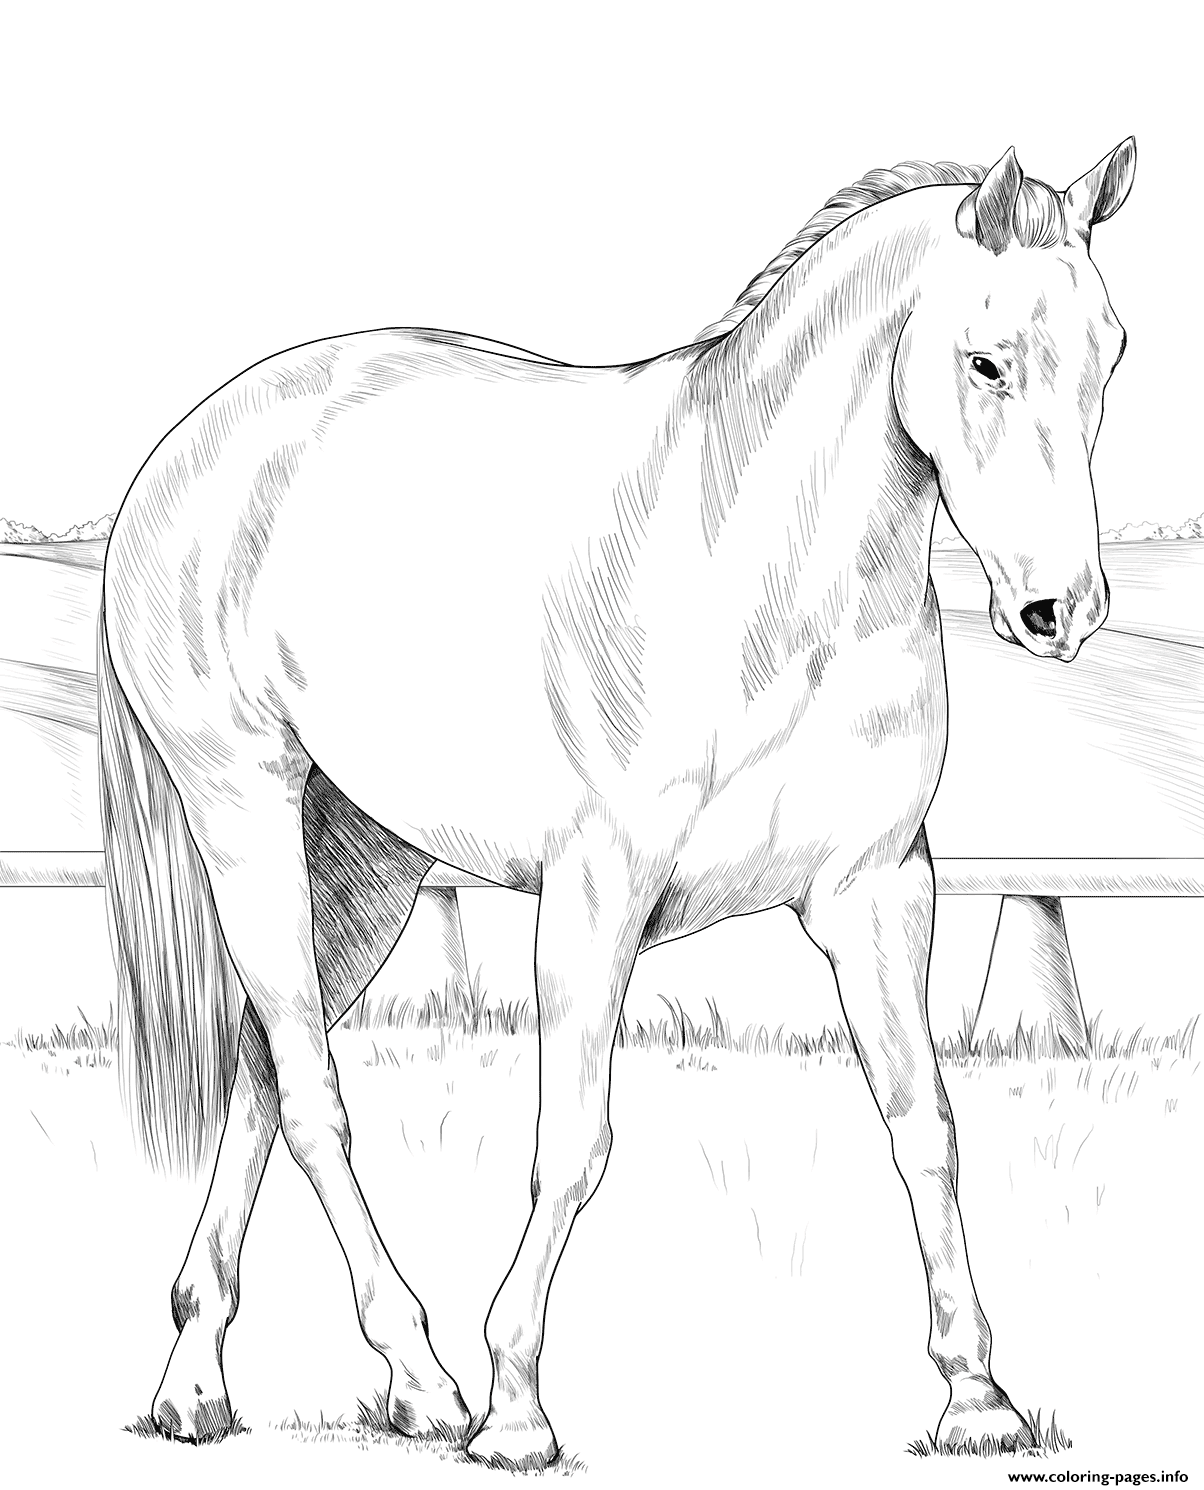 Australian Stock Horse coloring pages